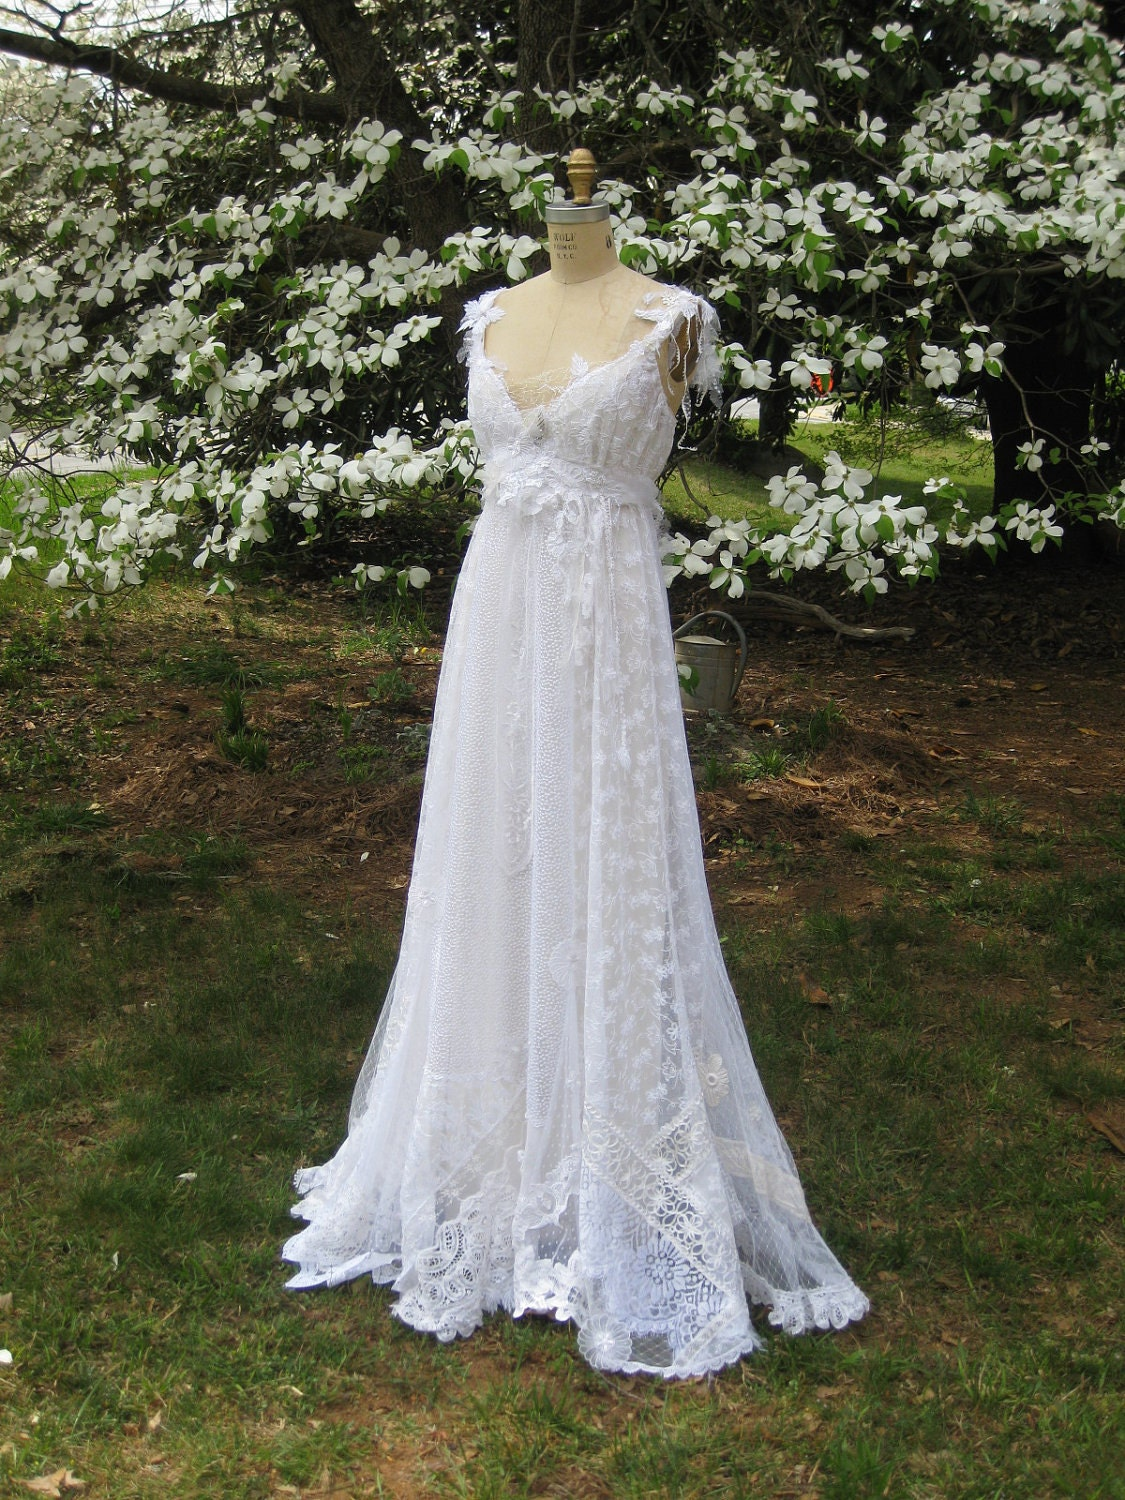 Hippie Lace Collage Gown One of a Kind Boho Wedding Dress Lace Hippie Wedding Dress